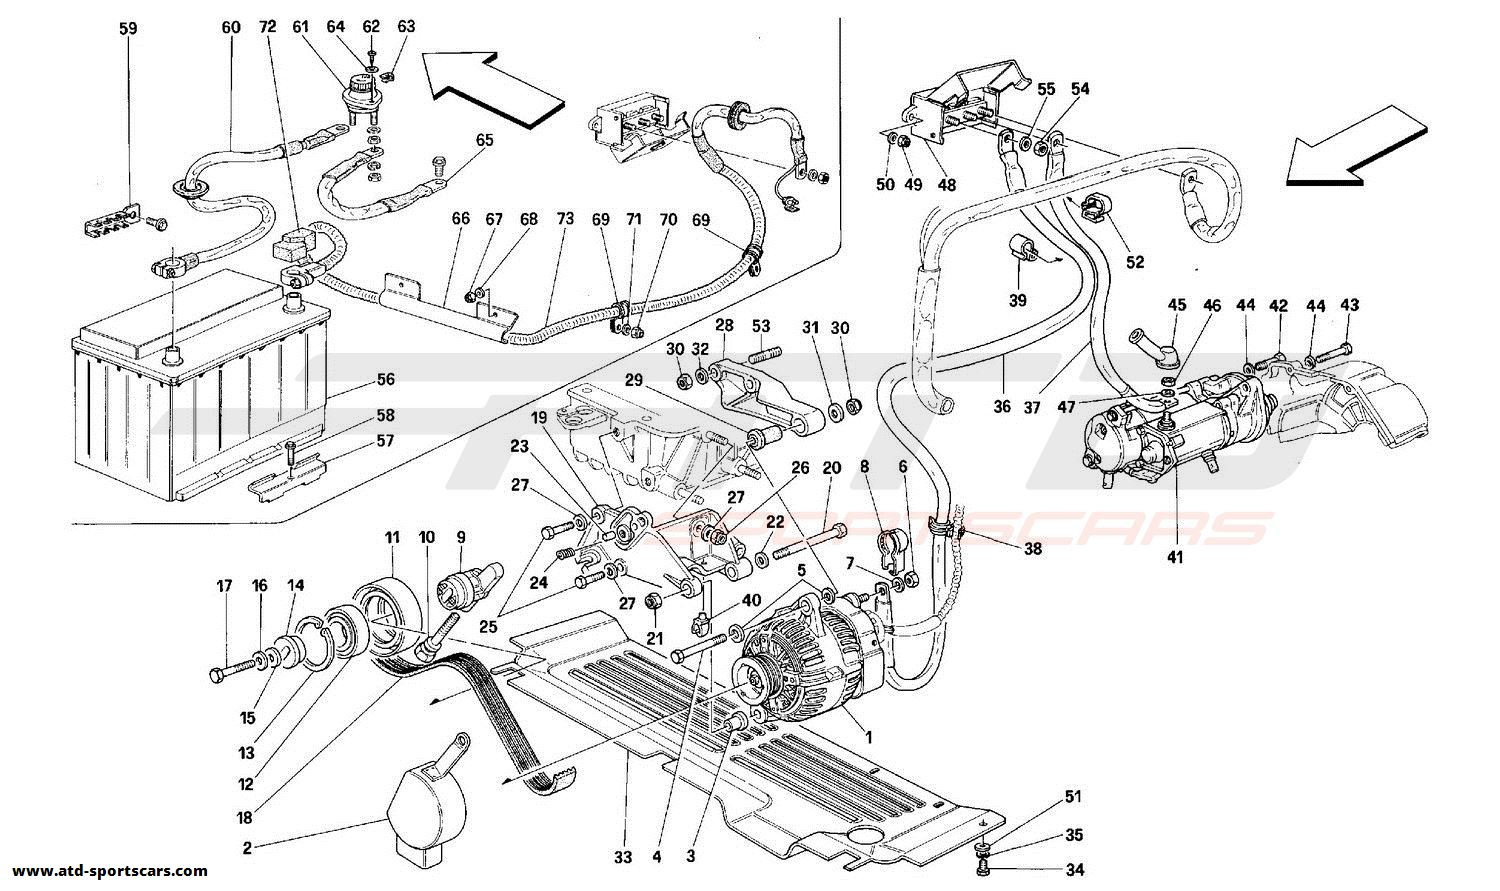 Ferrari 348 CURRENT GENERATOR - STARTING MOTOR